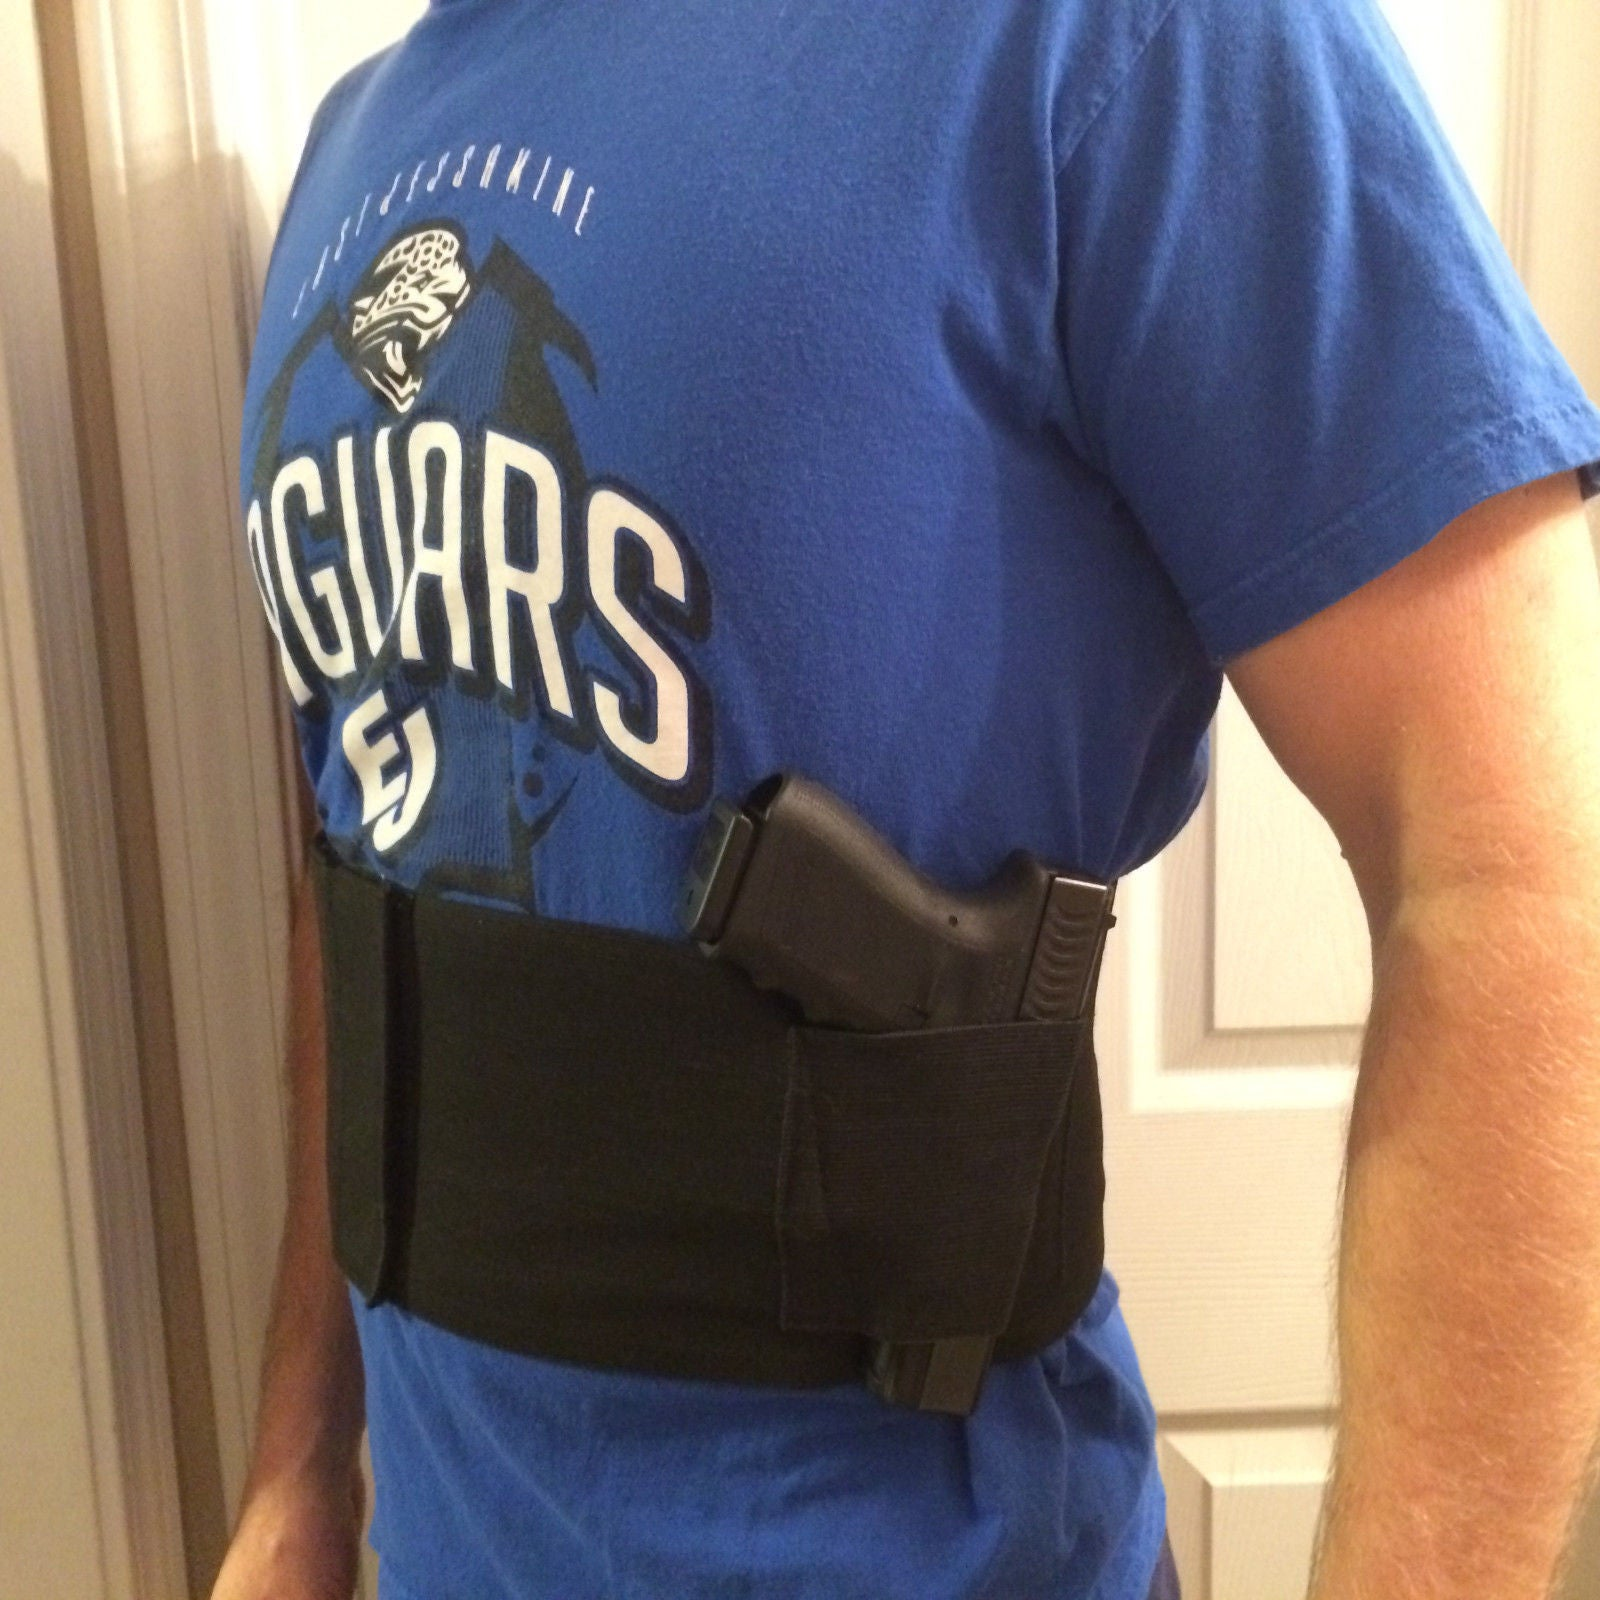 ADJUSTABLE BELLY BAND WAIST HOLSTER & 2 MAG POUCHES S,M,L,XL